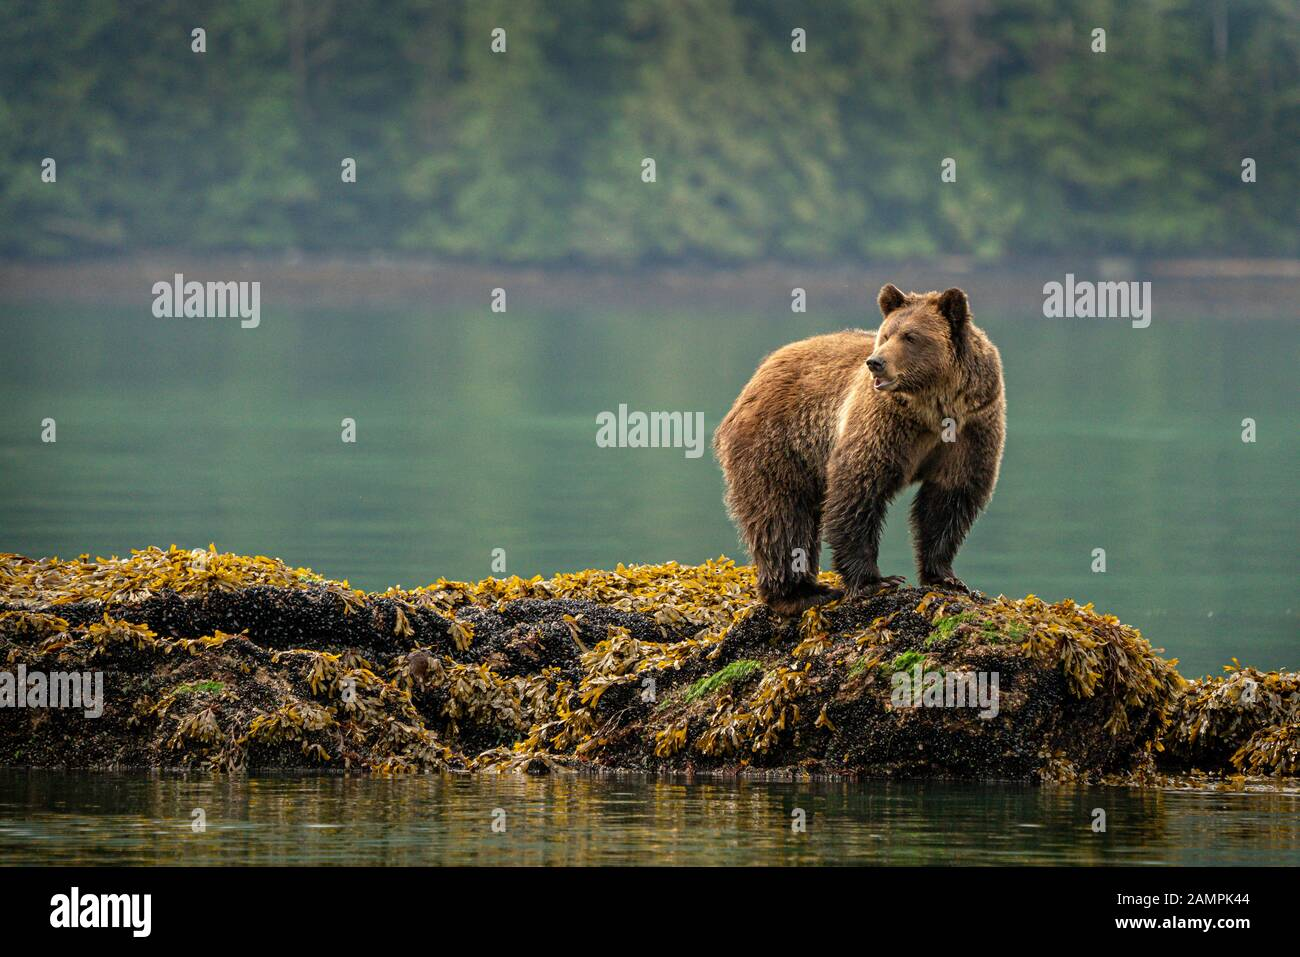 Grizzly bear foraging on mussels along the low tide line in Knight Inlet, First Nations Territory, British Columbia, Canada. Stock Photo